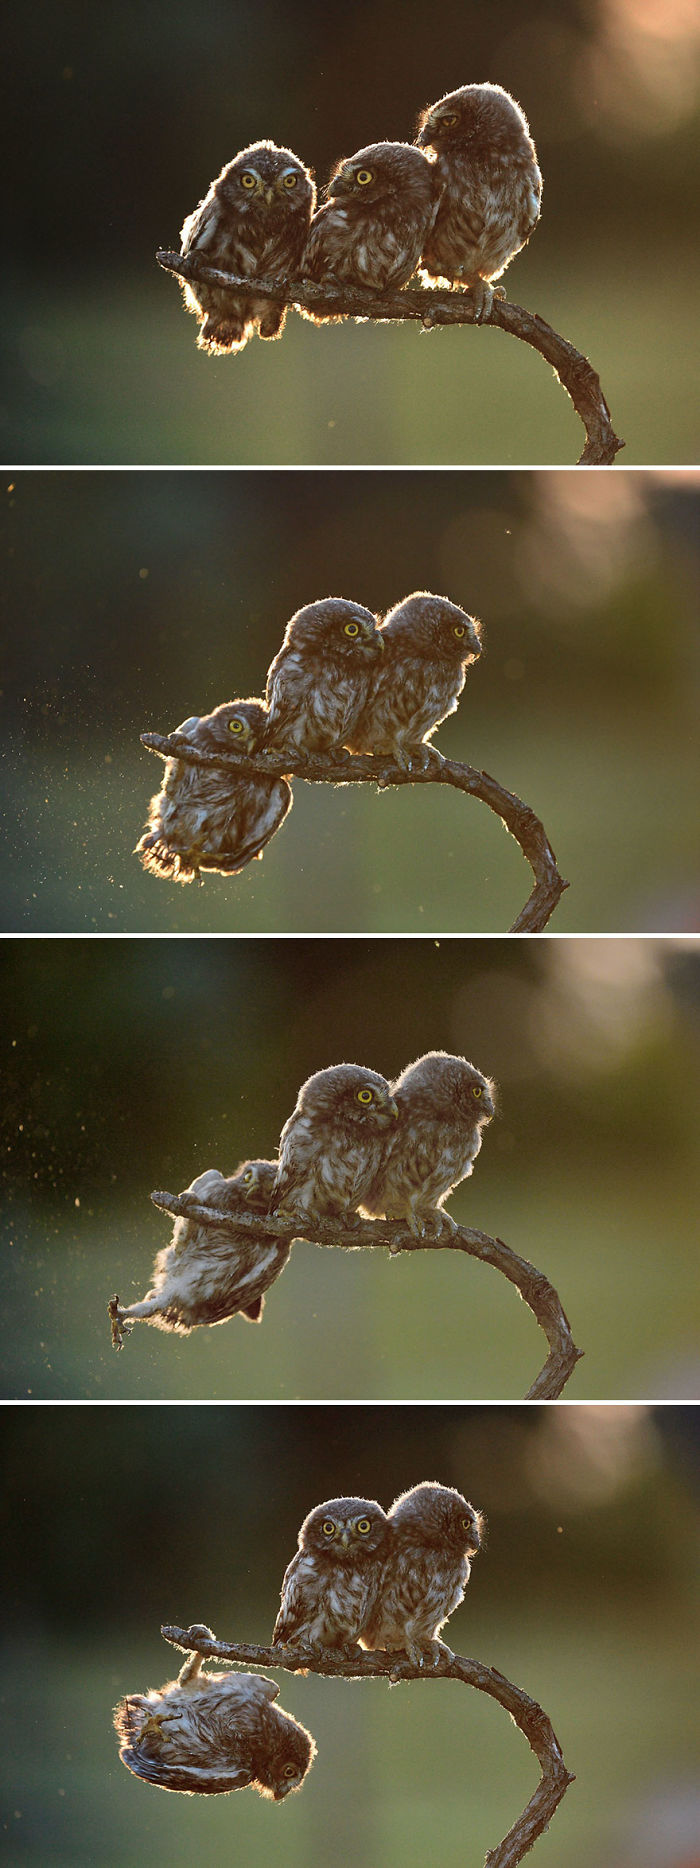 "Overall Winner 2017 ""Help"" And Winner Of Amazing Internet Portfolio Prize Tibor Kerccz For His Sequence Of 4 Owl Images"